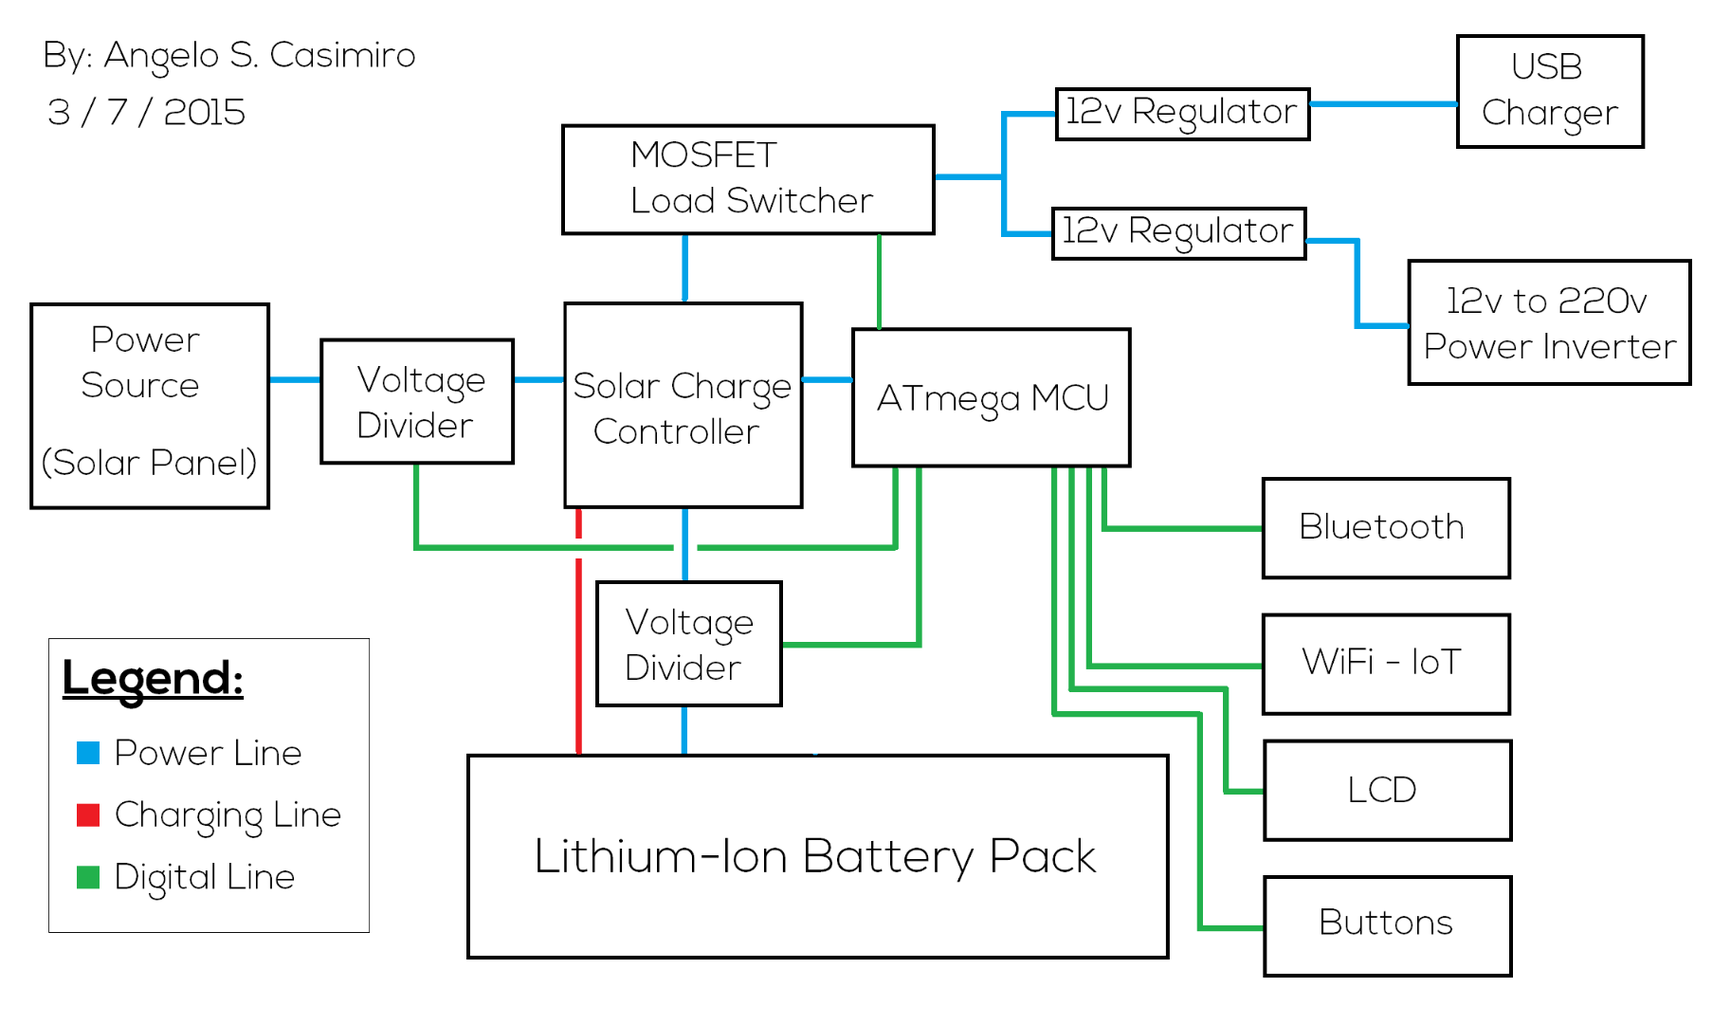 Layout of the Electronics - How It Works